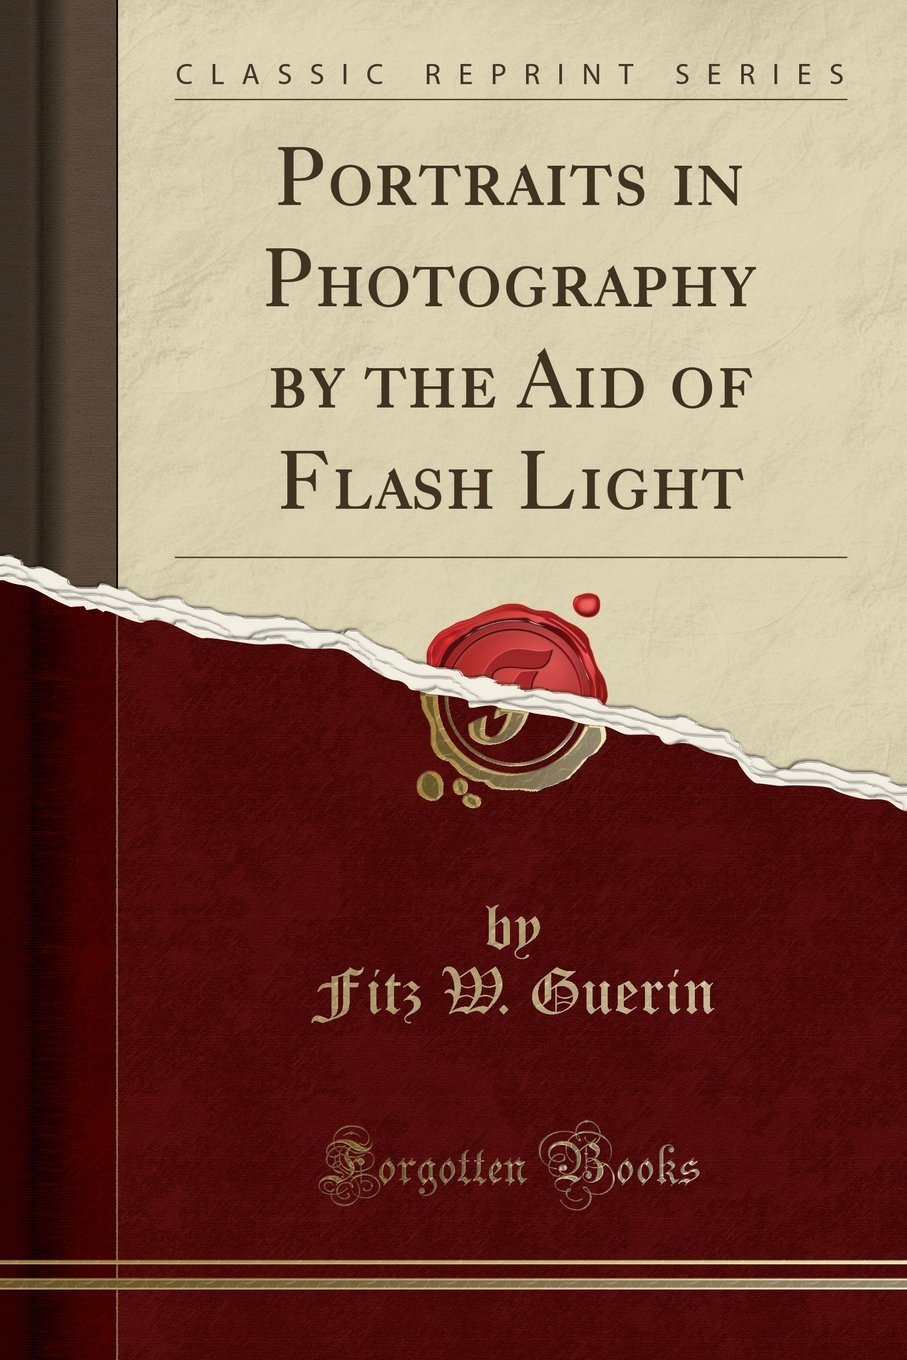 portraits-in-photography-by-the-aid-of-flash-light-classic-reprint